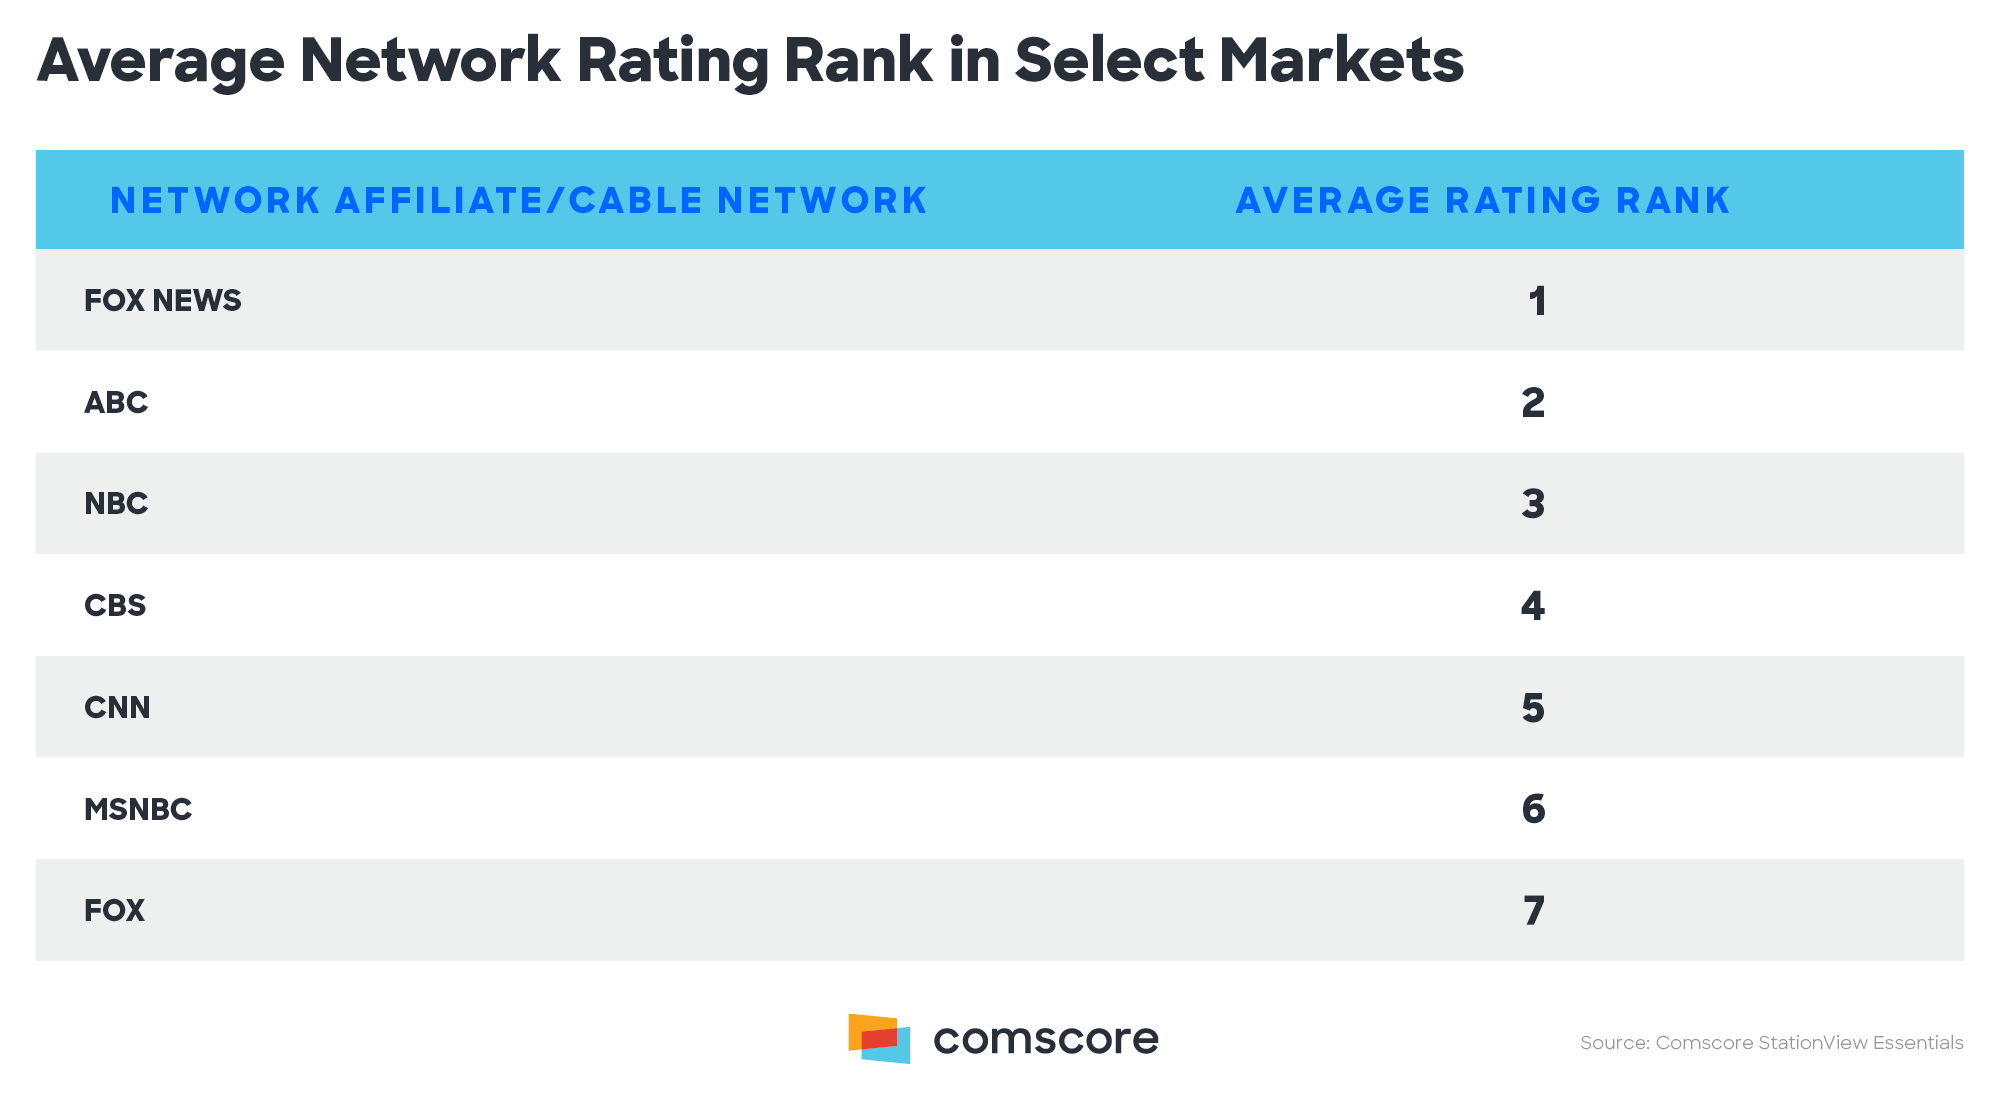 Average Network Rating Rank in Select Markets